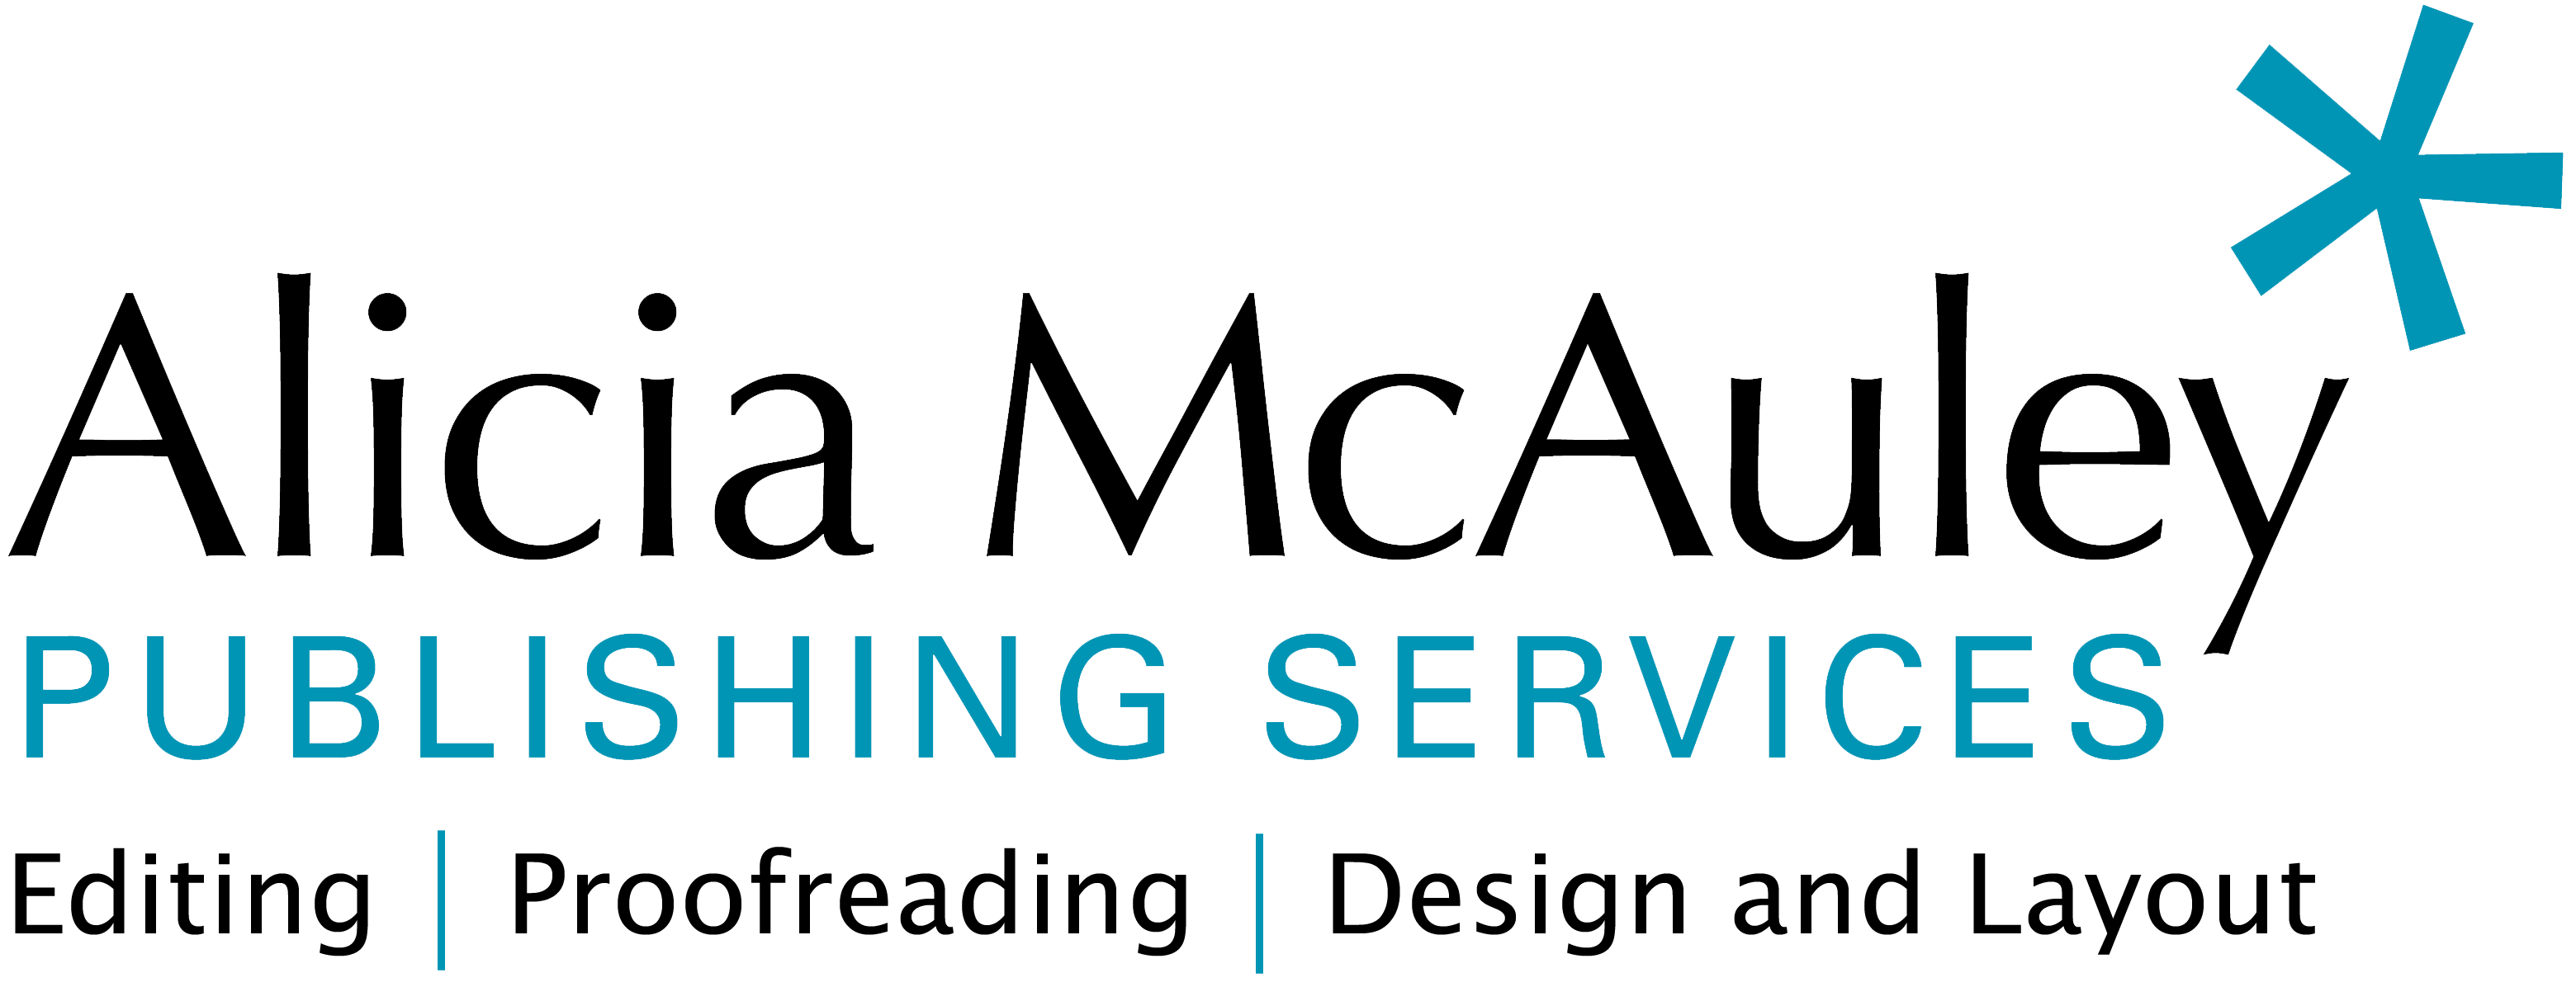 Alicia McAuley Publishing Services